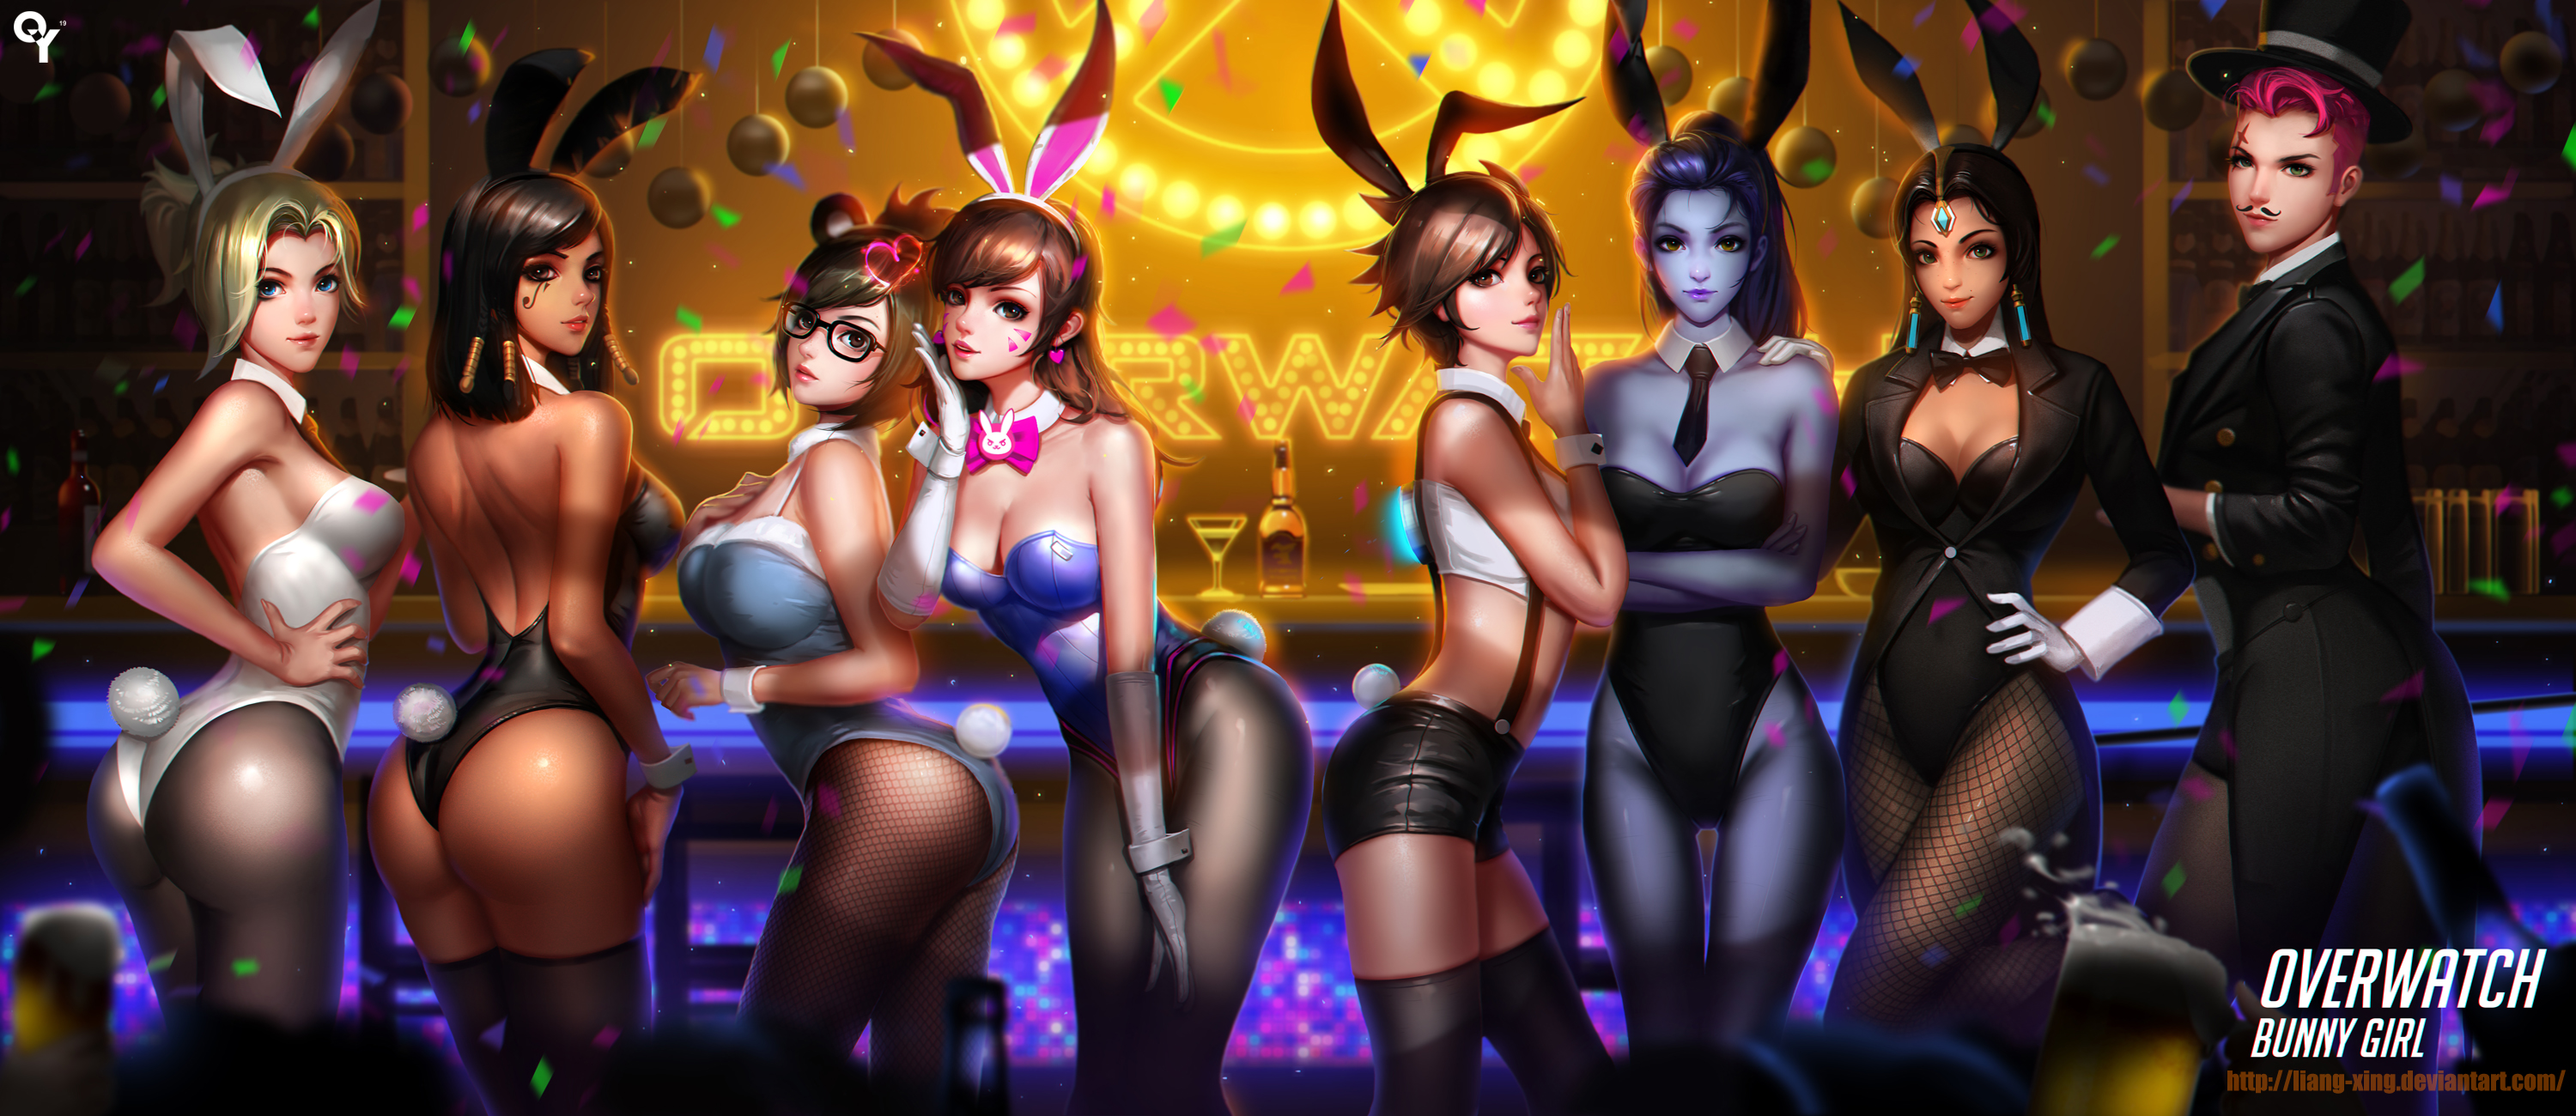 Room Spicy Bunnies The Best Source For Spicy Playboy Playmates